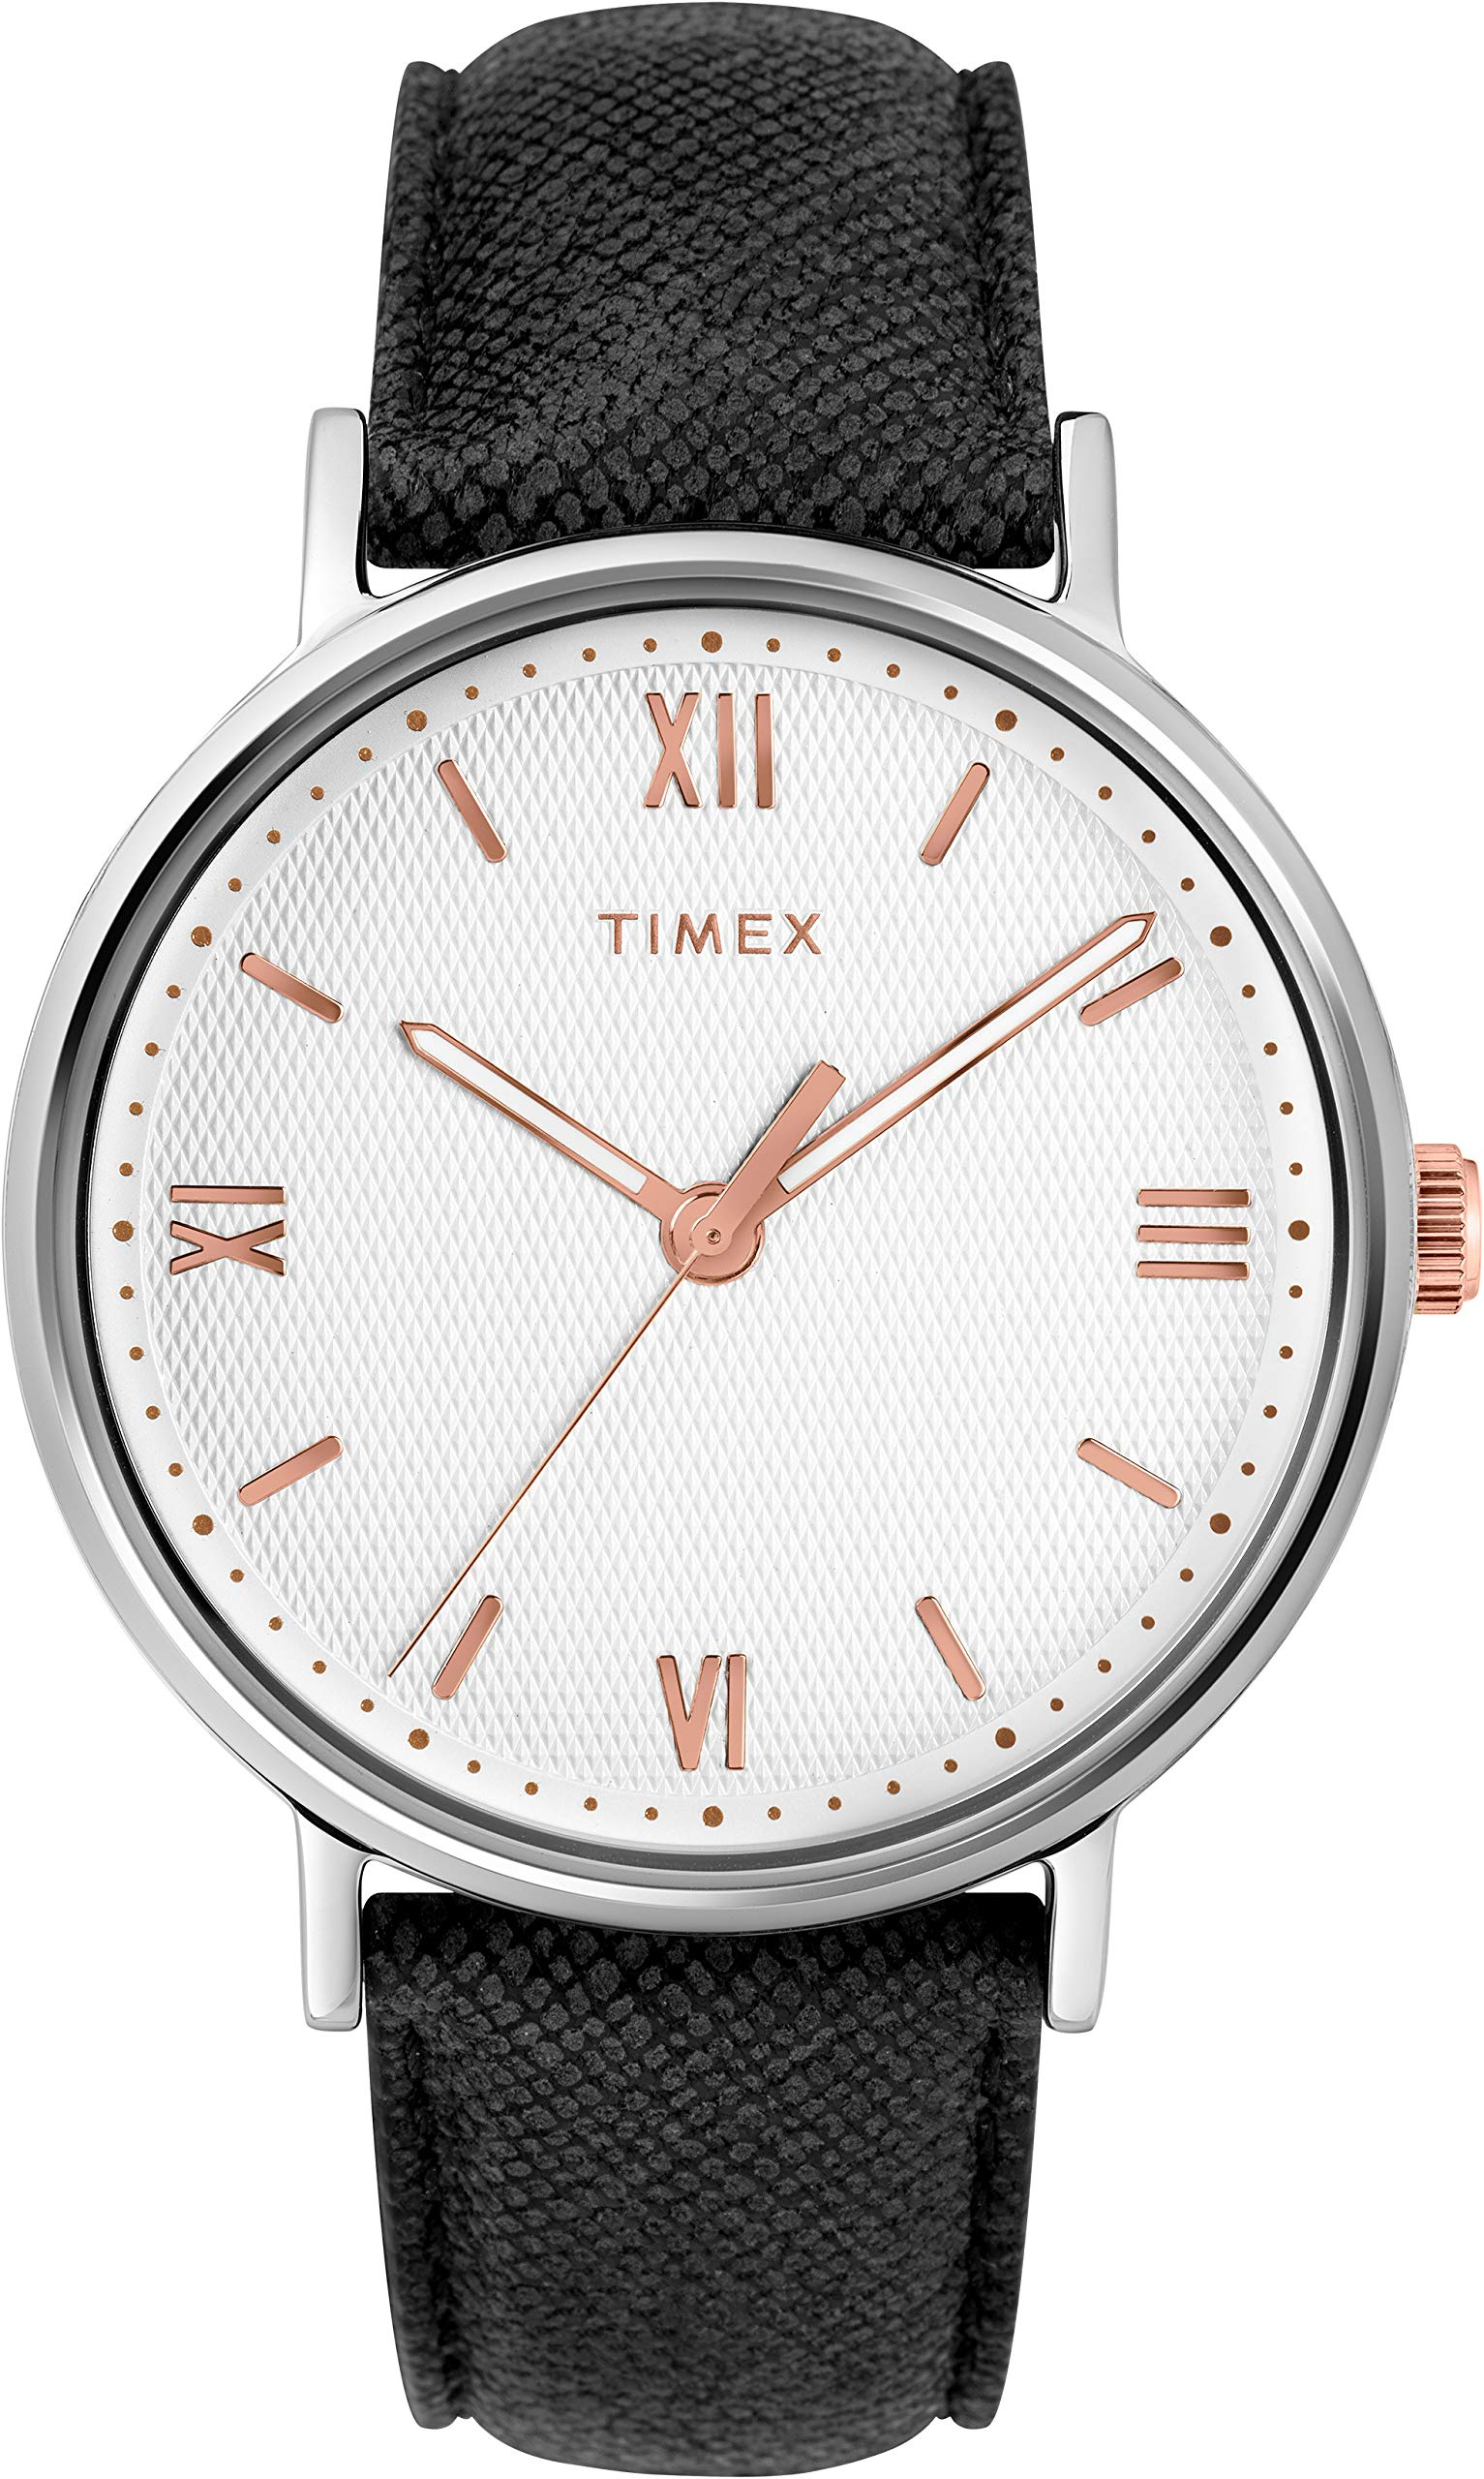 Timex Men's Southview 41 mm Leather Strap Watch